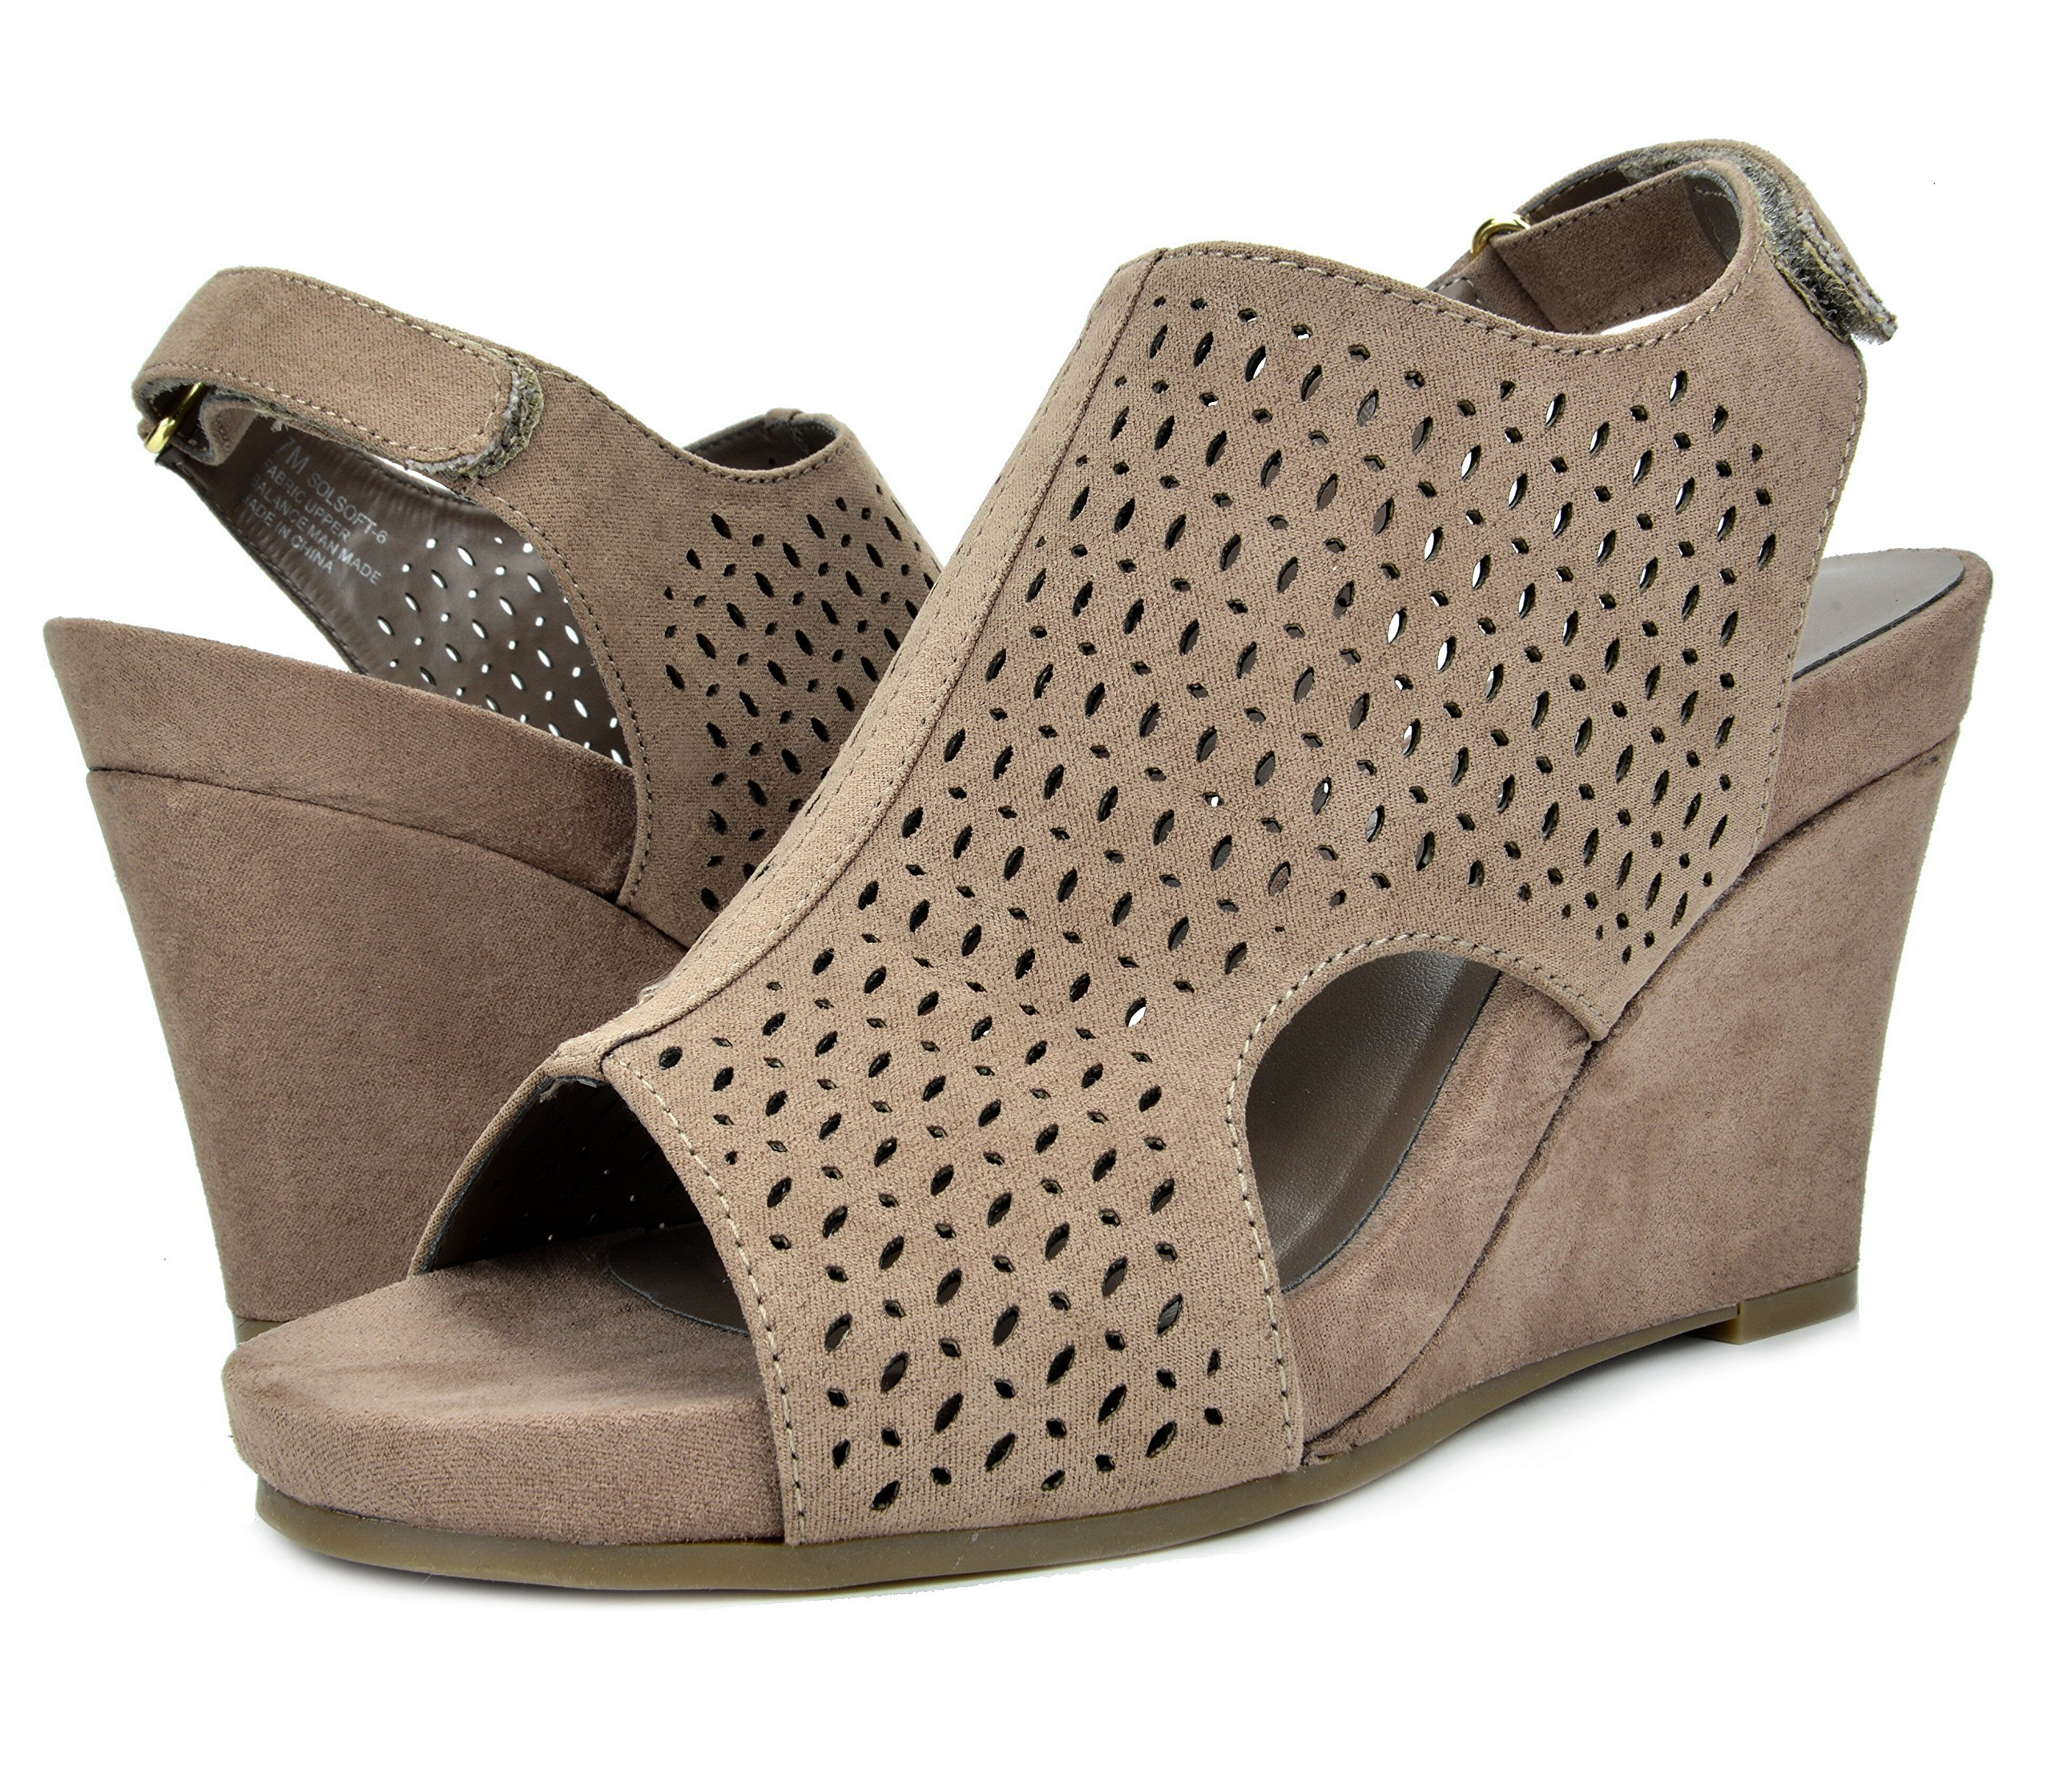 TOETOS Women's Solsoft-6 Taupe Mid Heel Platform Wedges Sandals - 9.5 M US by TOETOS (Image #2)